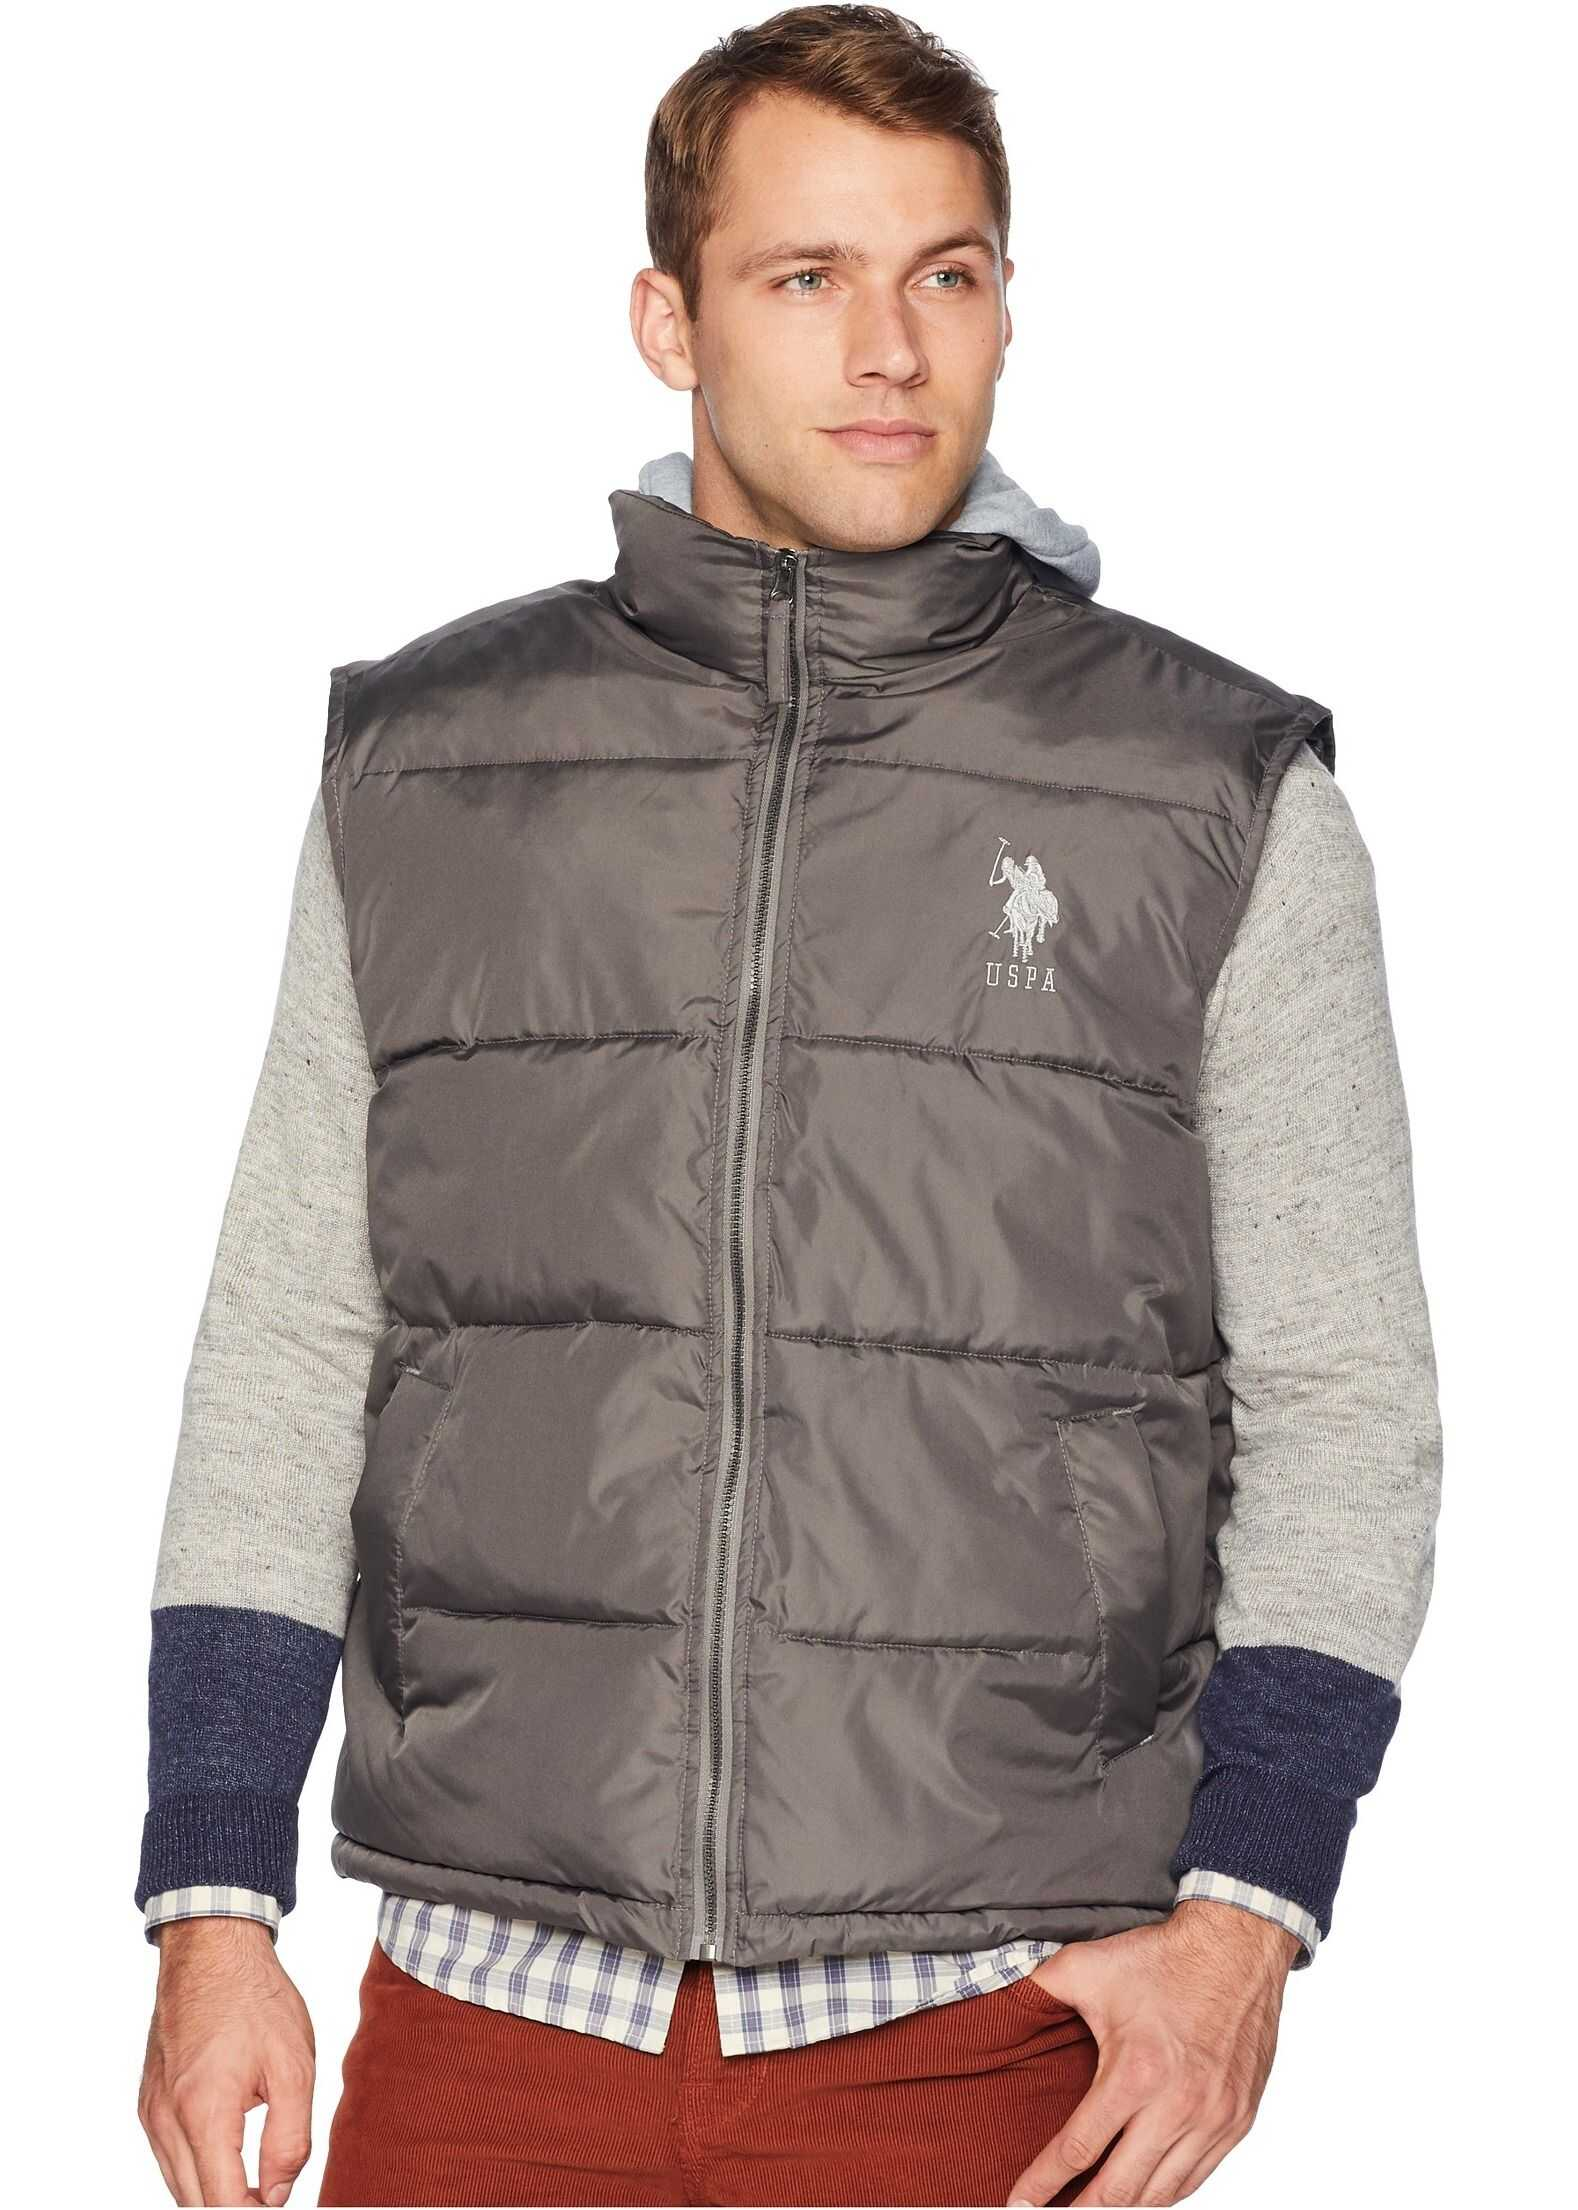 U.S. POLO ASSN. Hooded Basic Vest Castlerock